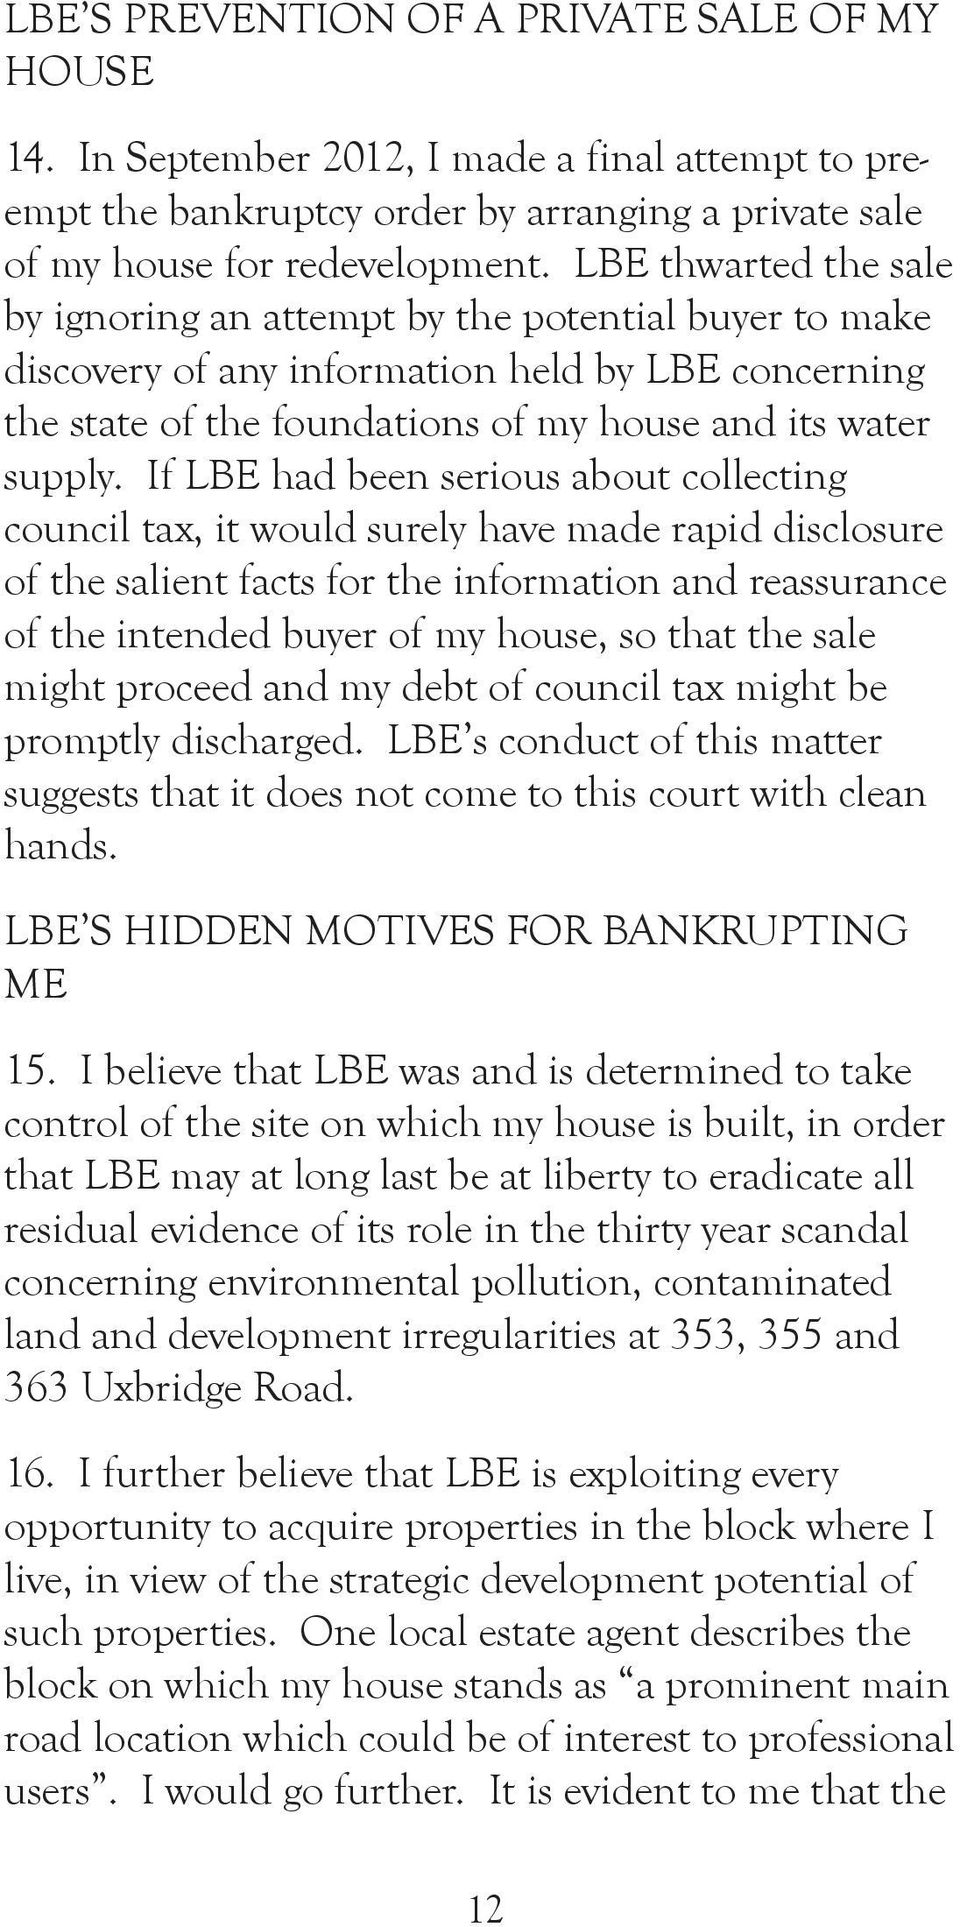 If LBE had been serious about collecting council tax, it would surely have made rapid disclosure of the salient facts for the information and reassurance of the intended buyer of my house, so that